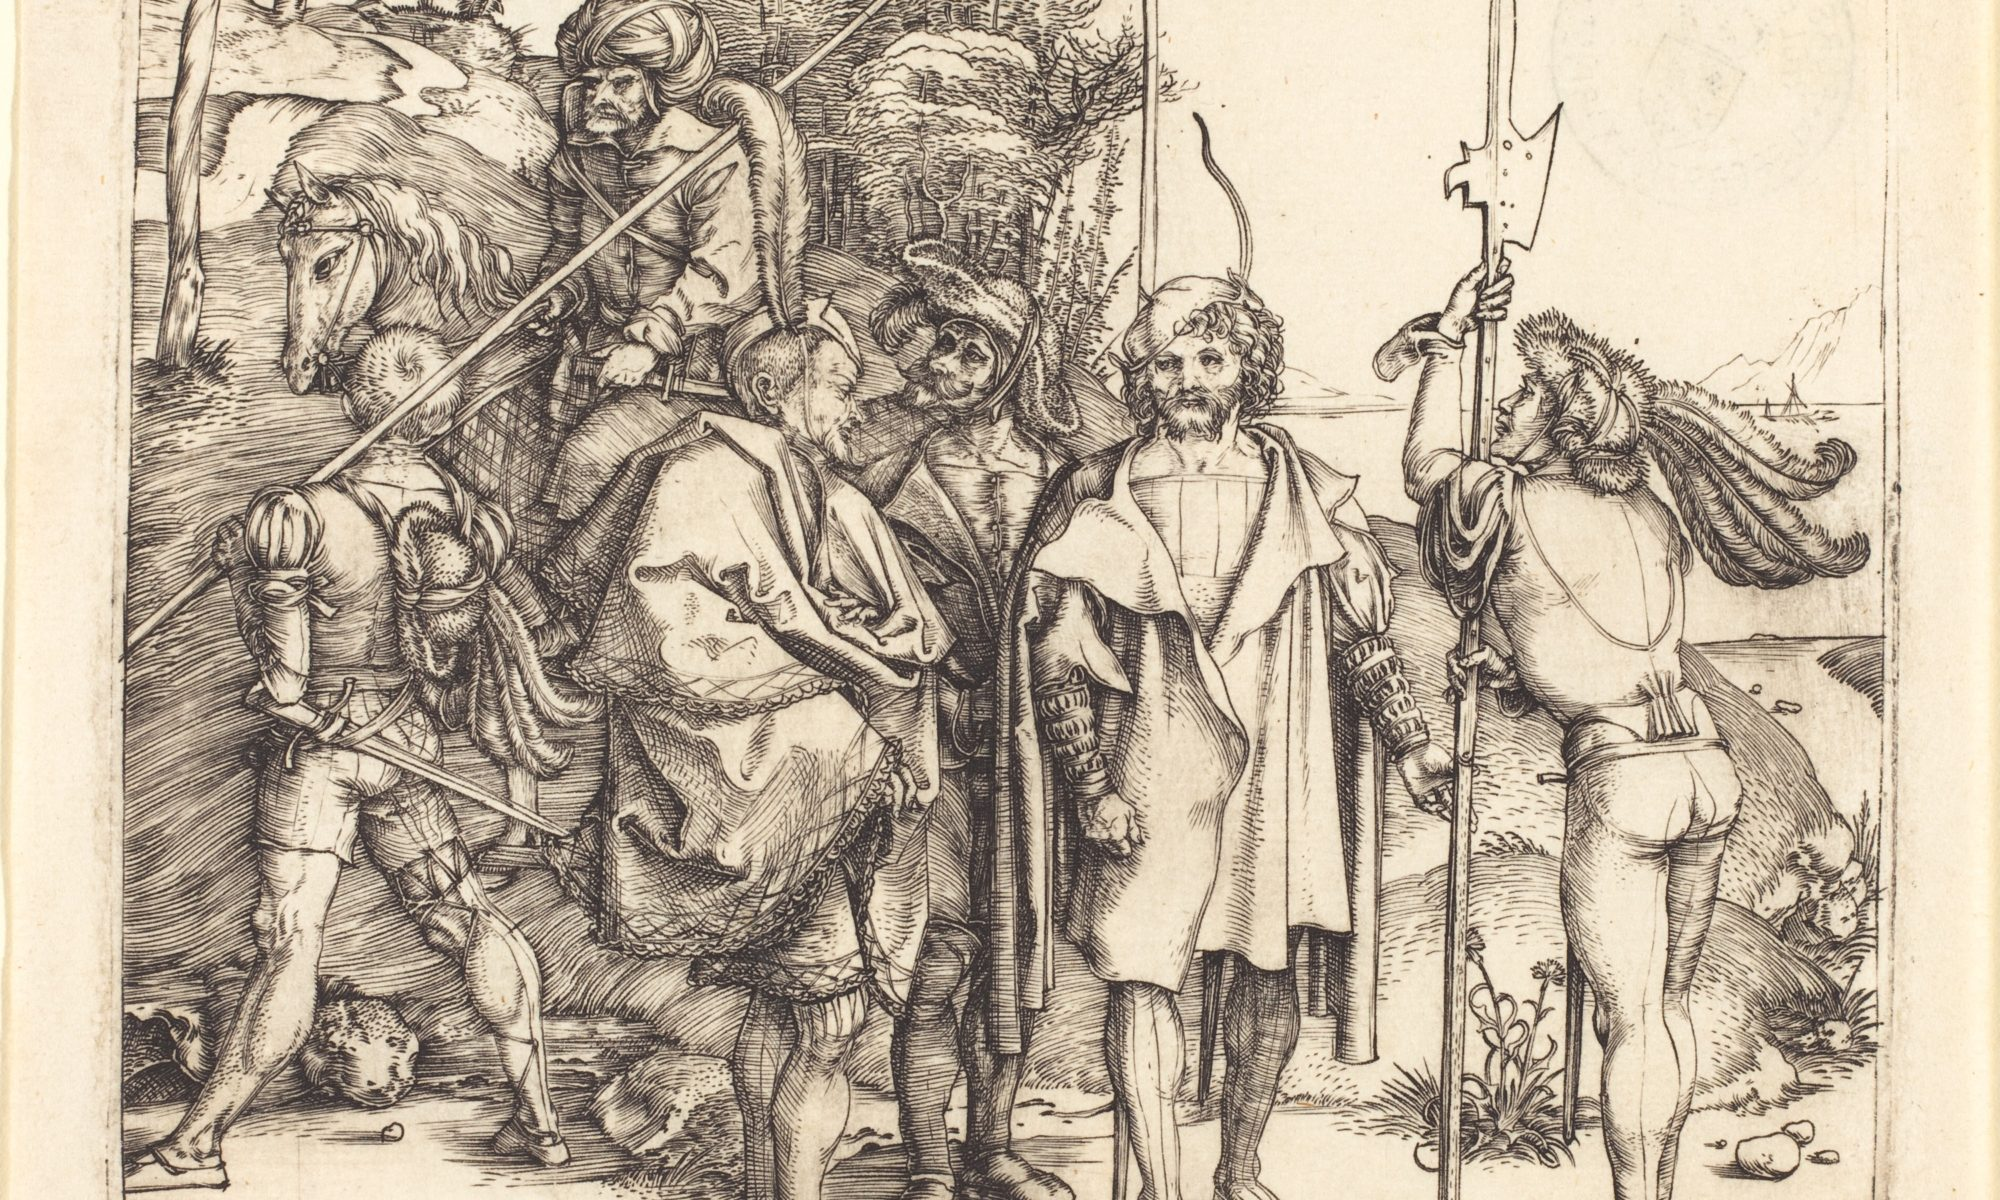 """Five Soliders and a Turk on Horseback"" by Albrecht Dürer"